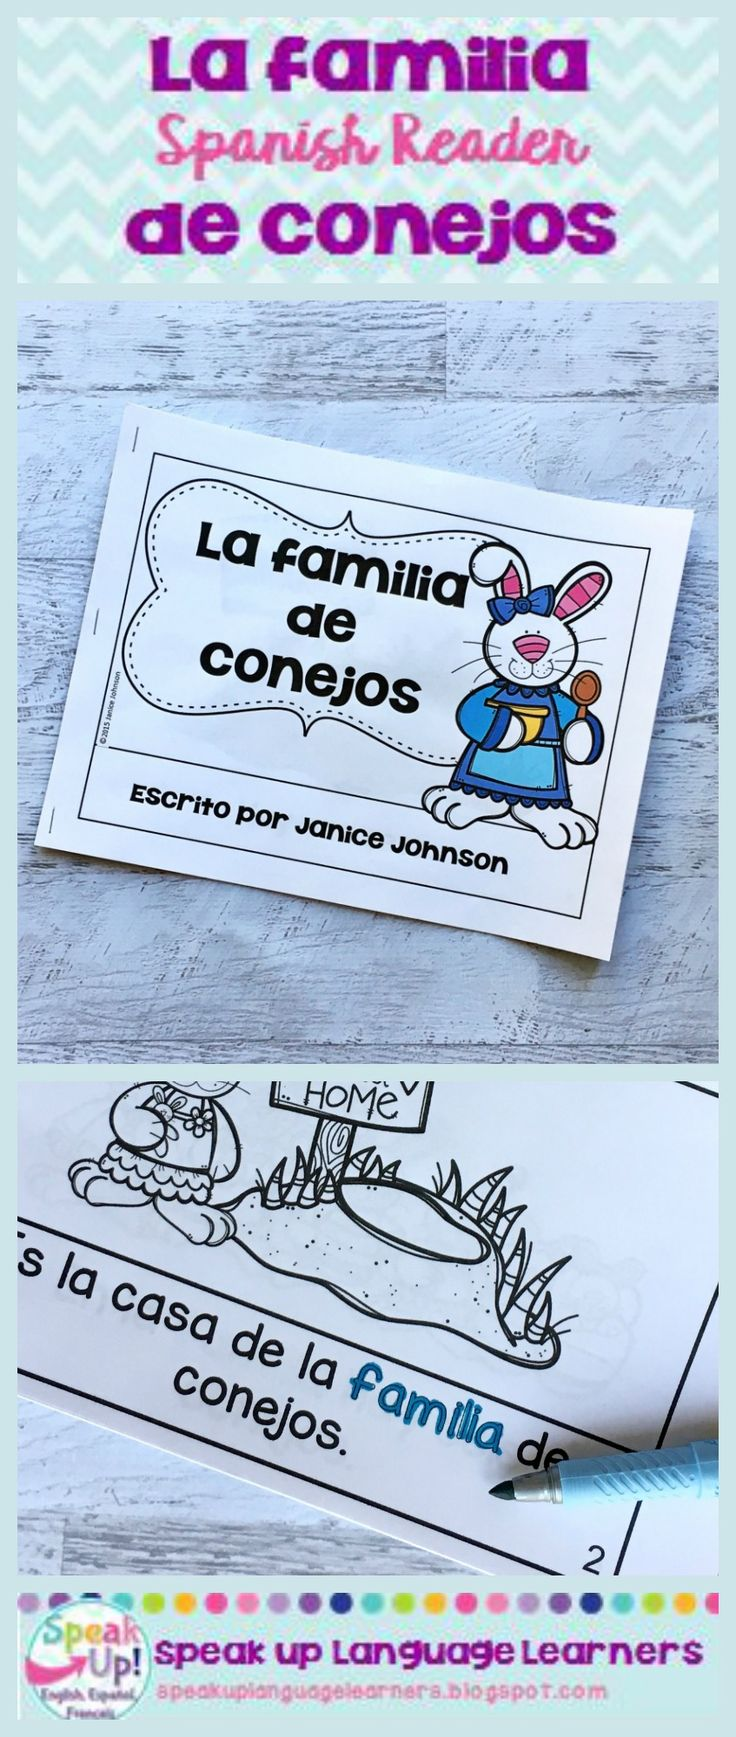 La Familia de Conejos Spanish Easter Family Reader 1. A large 21 page Spanish reader in color. The reader is written in simple terms appropriate for young dual language/immersion/FLES students/readers learning Spanish. 2. Small black and white student readers with traceable vocabulary words. Directions for how to assemble the readers are included.